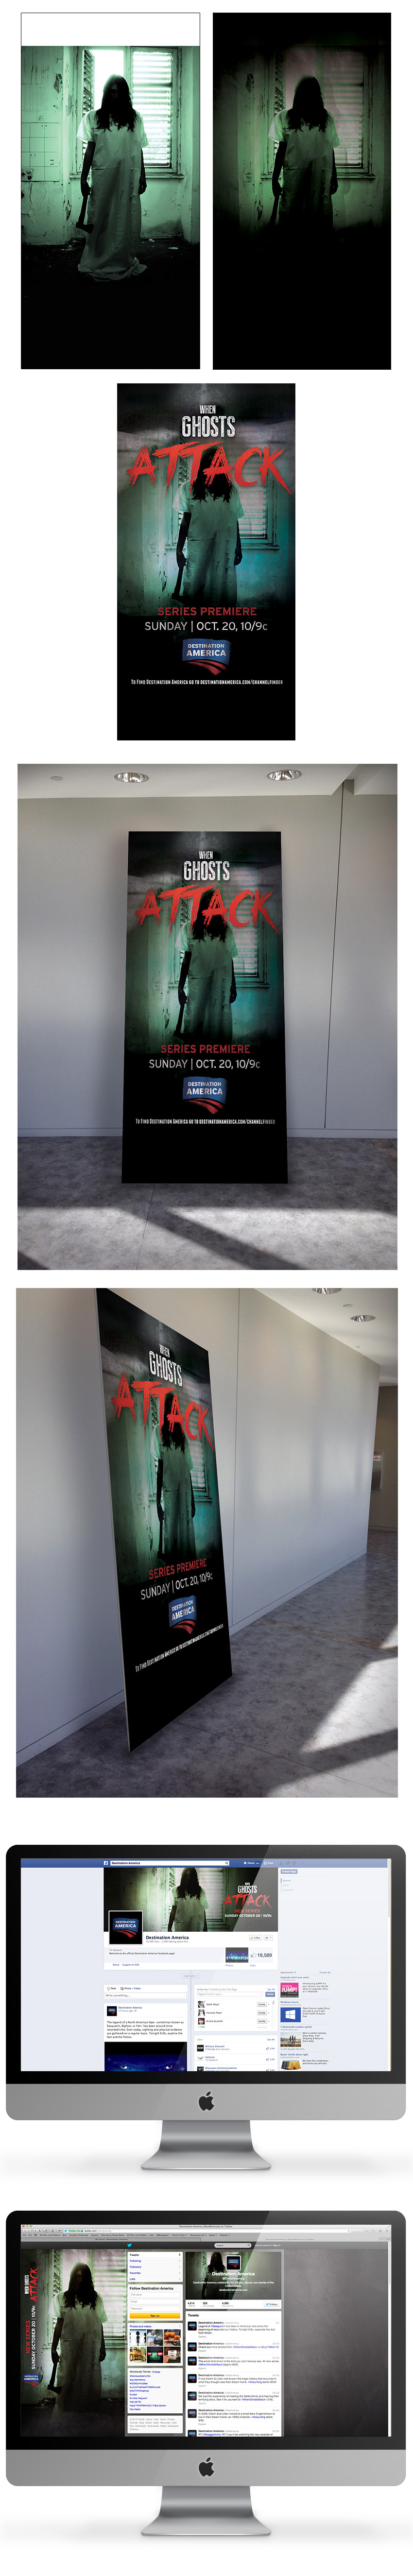 A 36x72 sign was created to advertise When Ghosts Attack in Destination America. The sign was showcased at a New York event that promoted upcoming premieres for Destination America. Staying consistent with the brand, the typography was use to highlight the premiere and marketing of the website. Textural elements was blended in the imagery to provide that ominous tone — which complements the tune-in and title treatment. The same elements was also utilize in the Facebook page and Twitter that would branch off to audiences. Art Direction: Linas Virbickas and Allison Wolfe